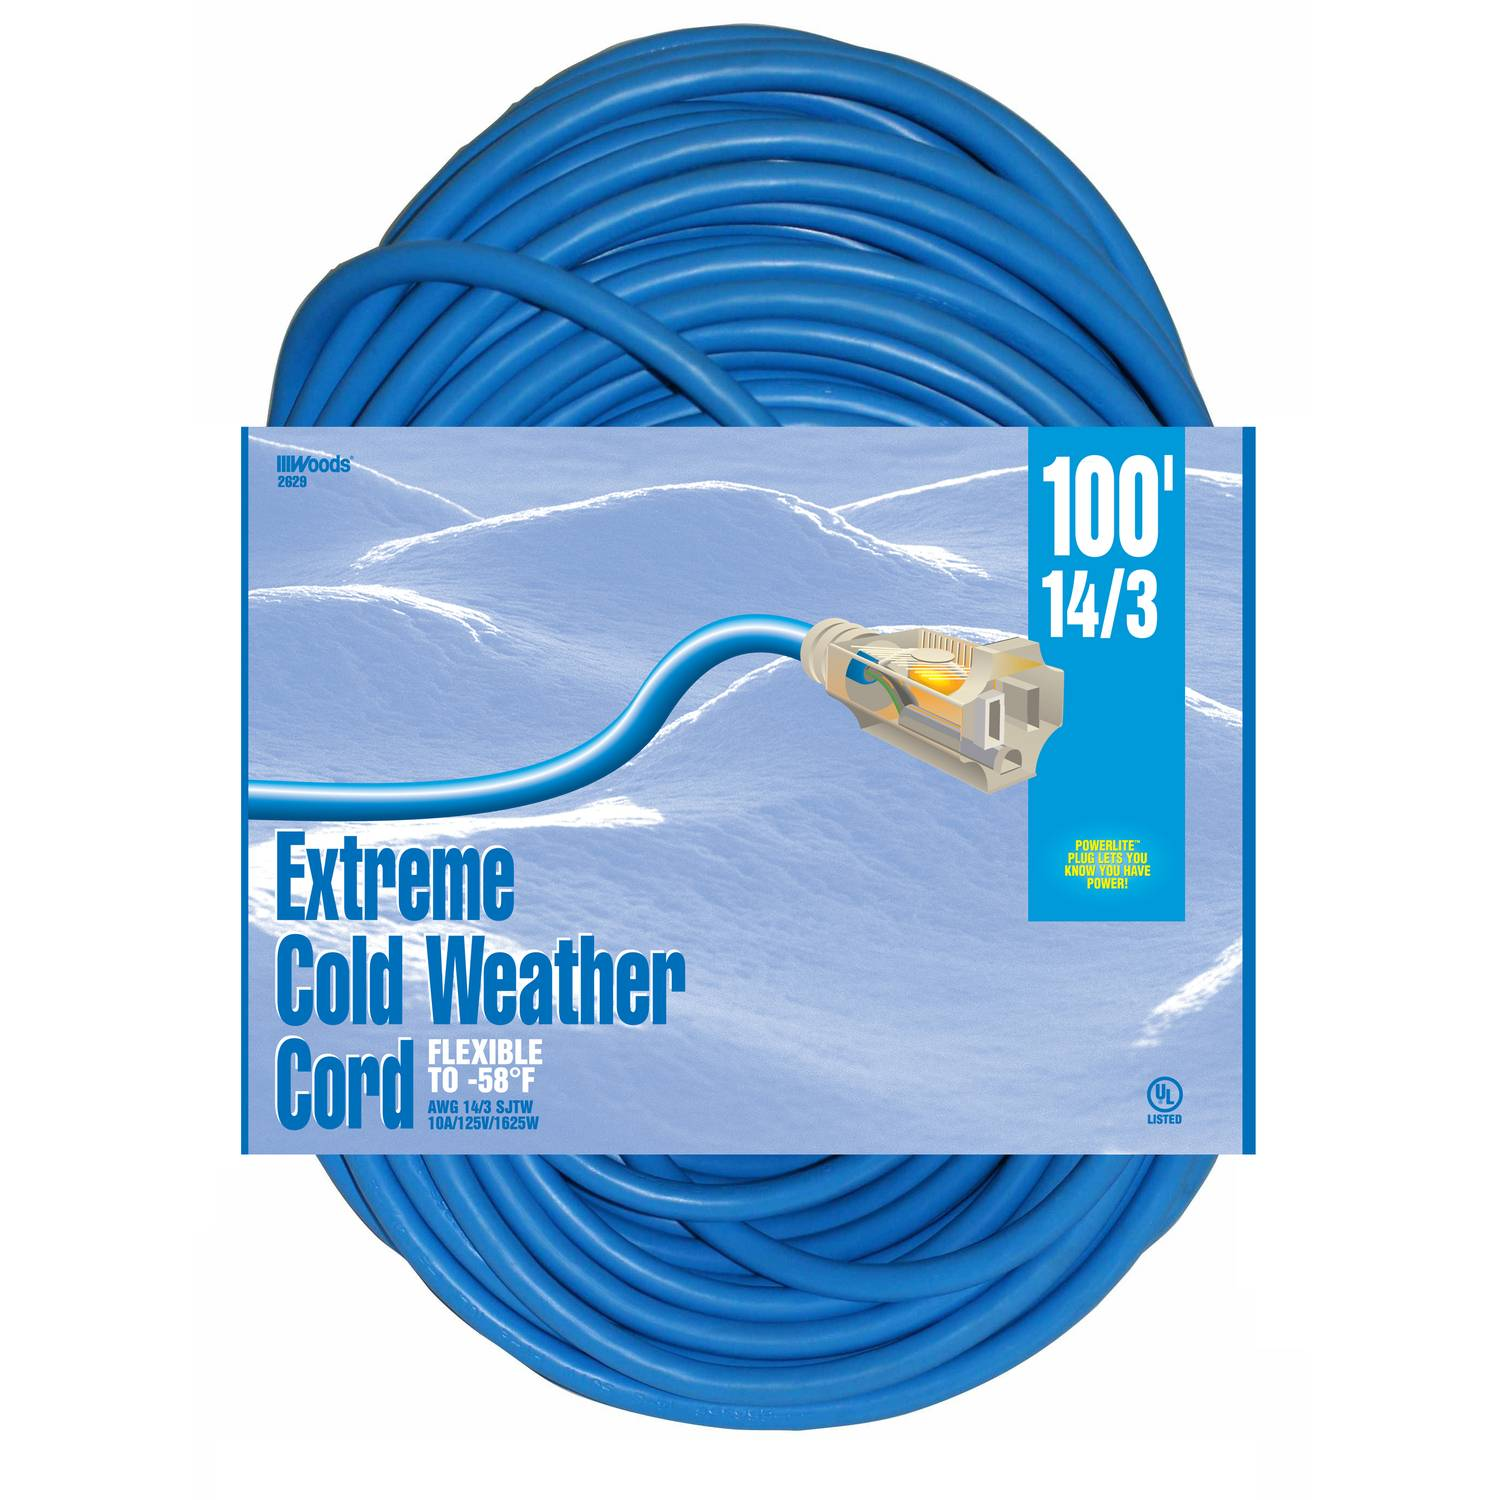 Woods Indoor and Outdoor 100 ft. L Blue Extension Cord 14/3